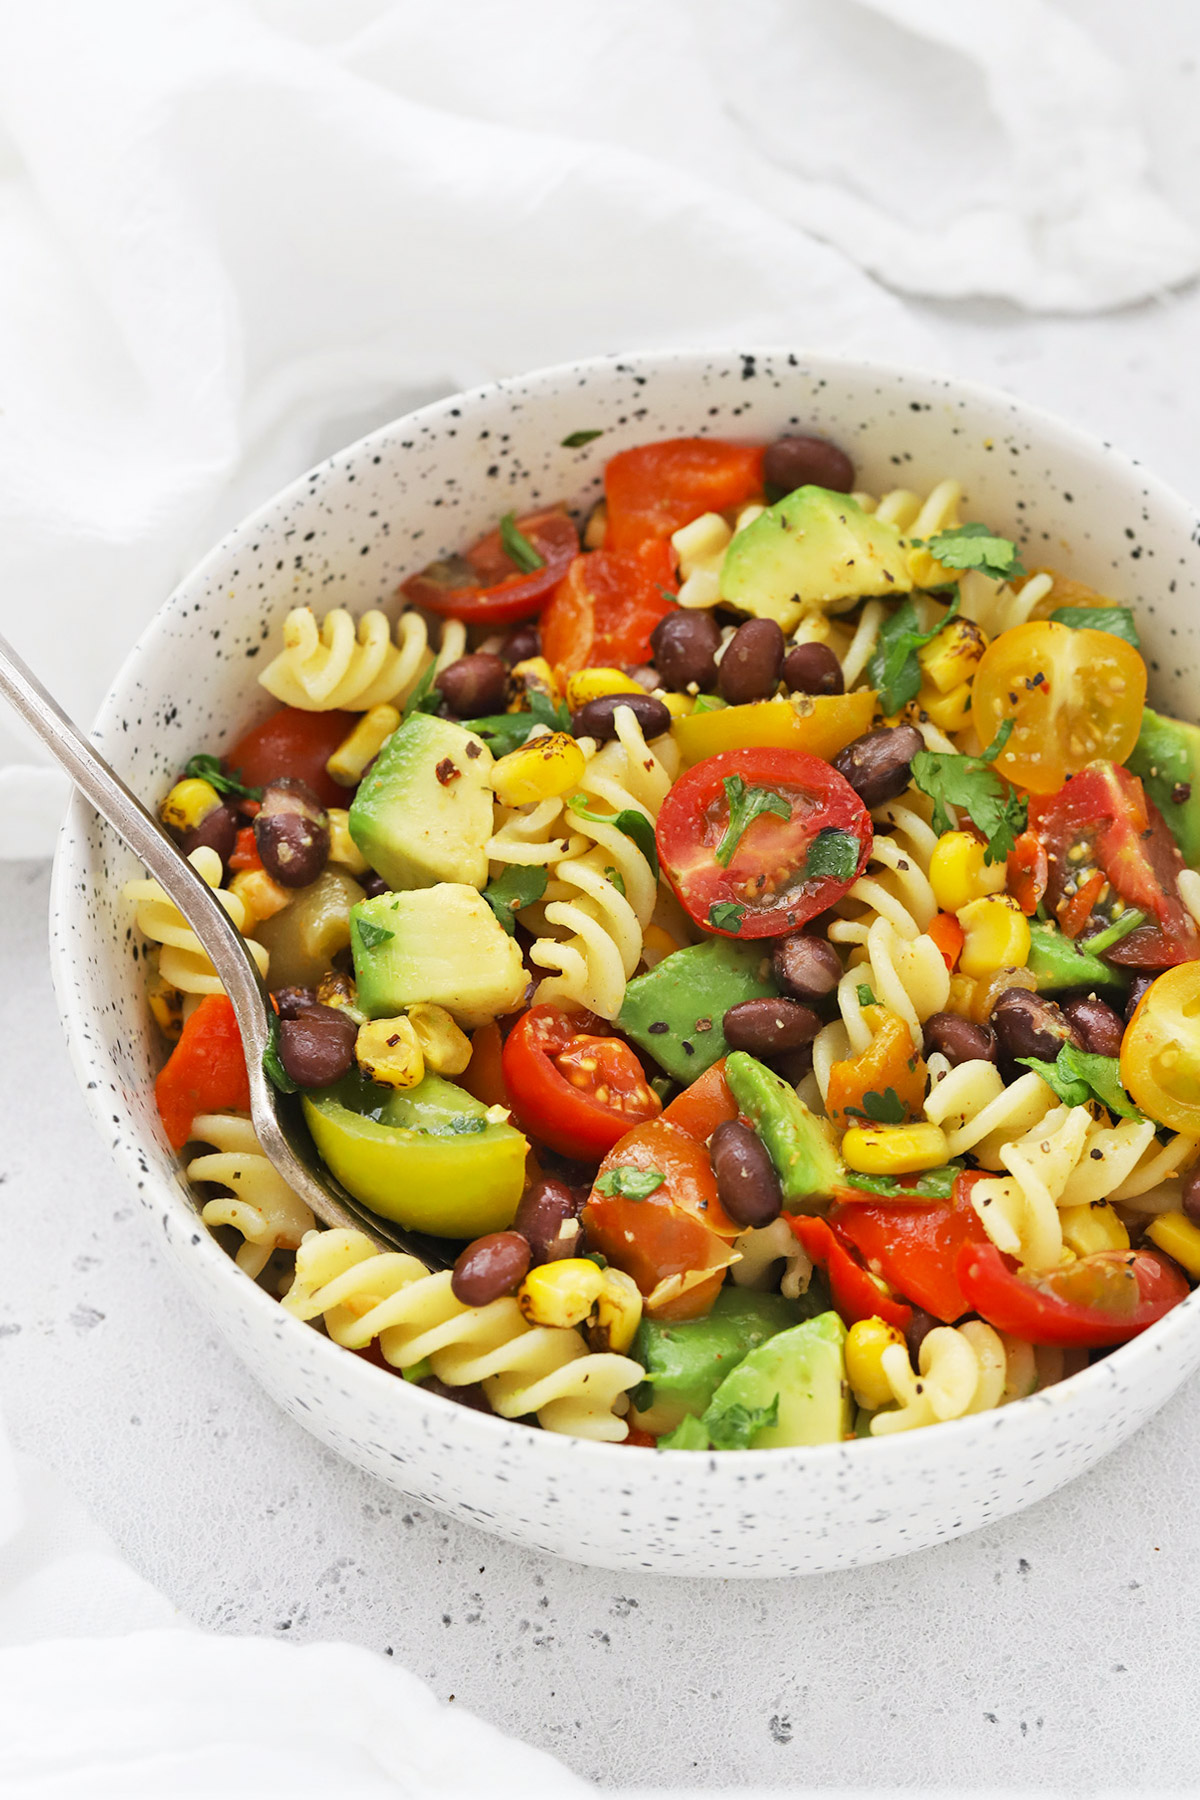 Front view of a speckled bowl of healthy taco pasta salad on a white background